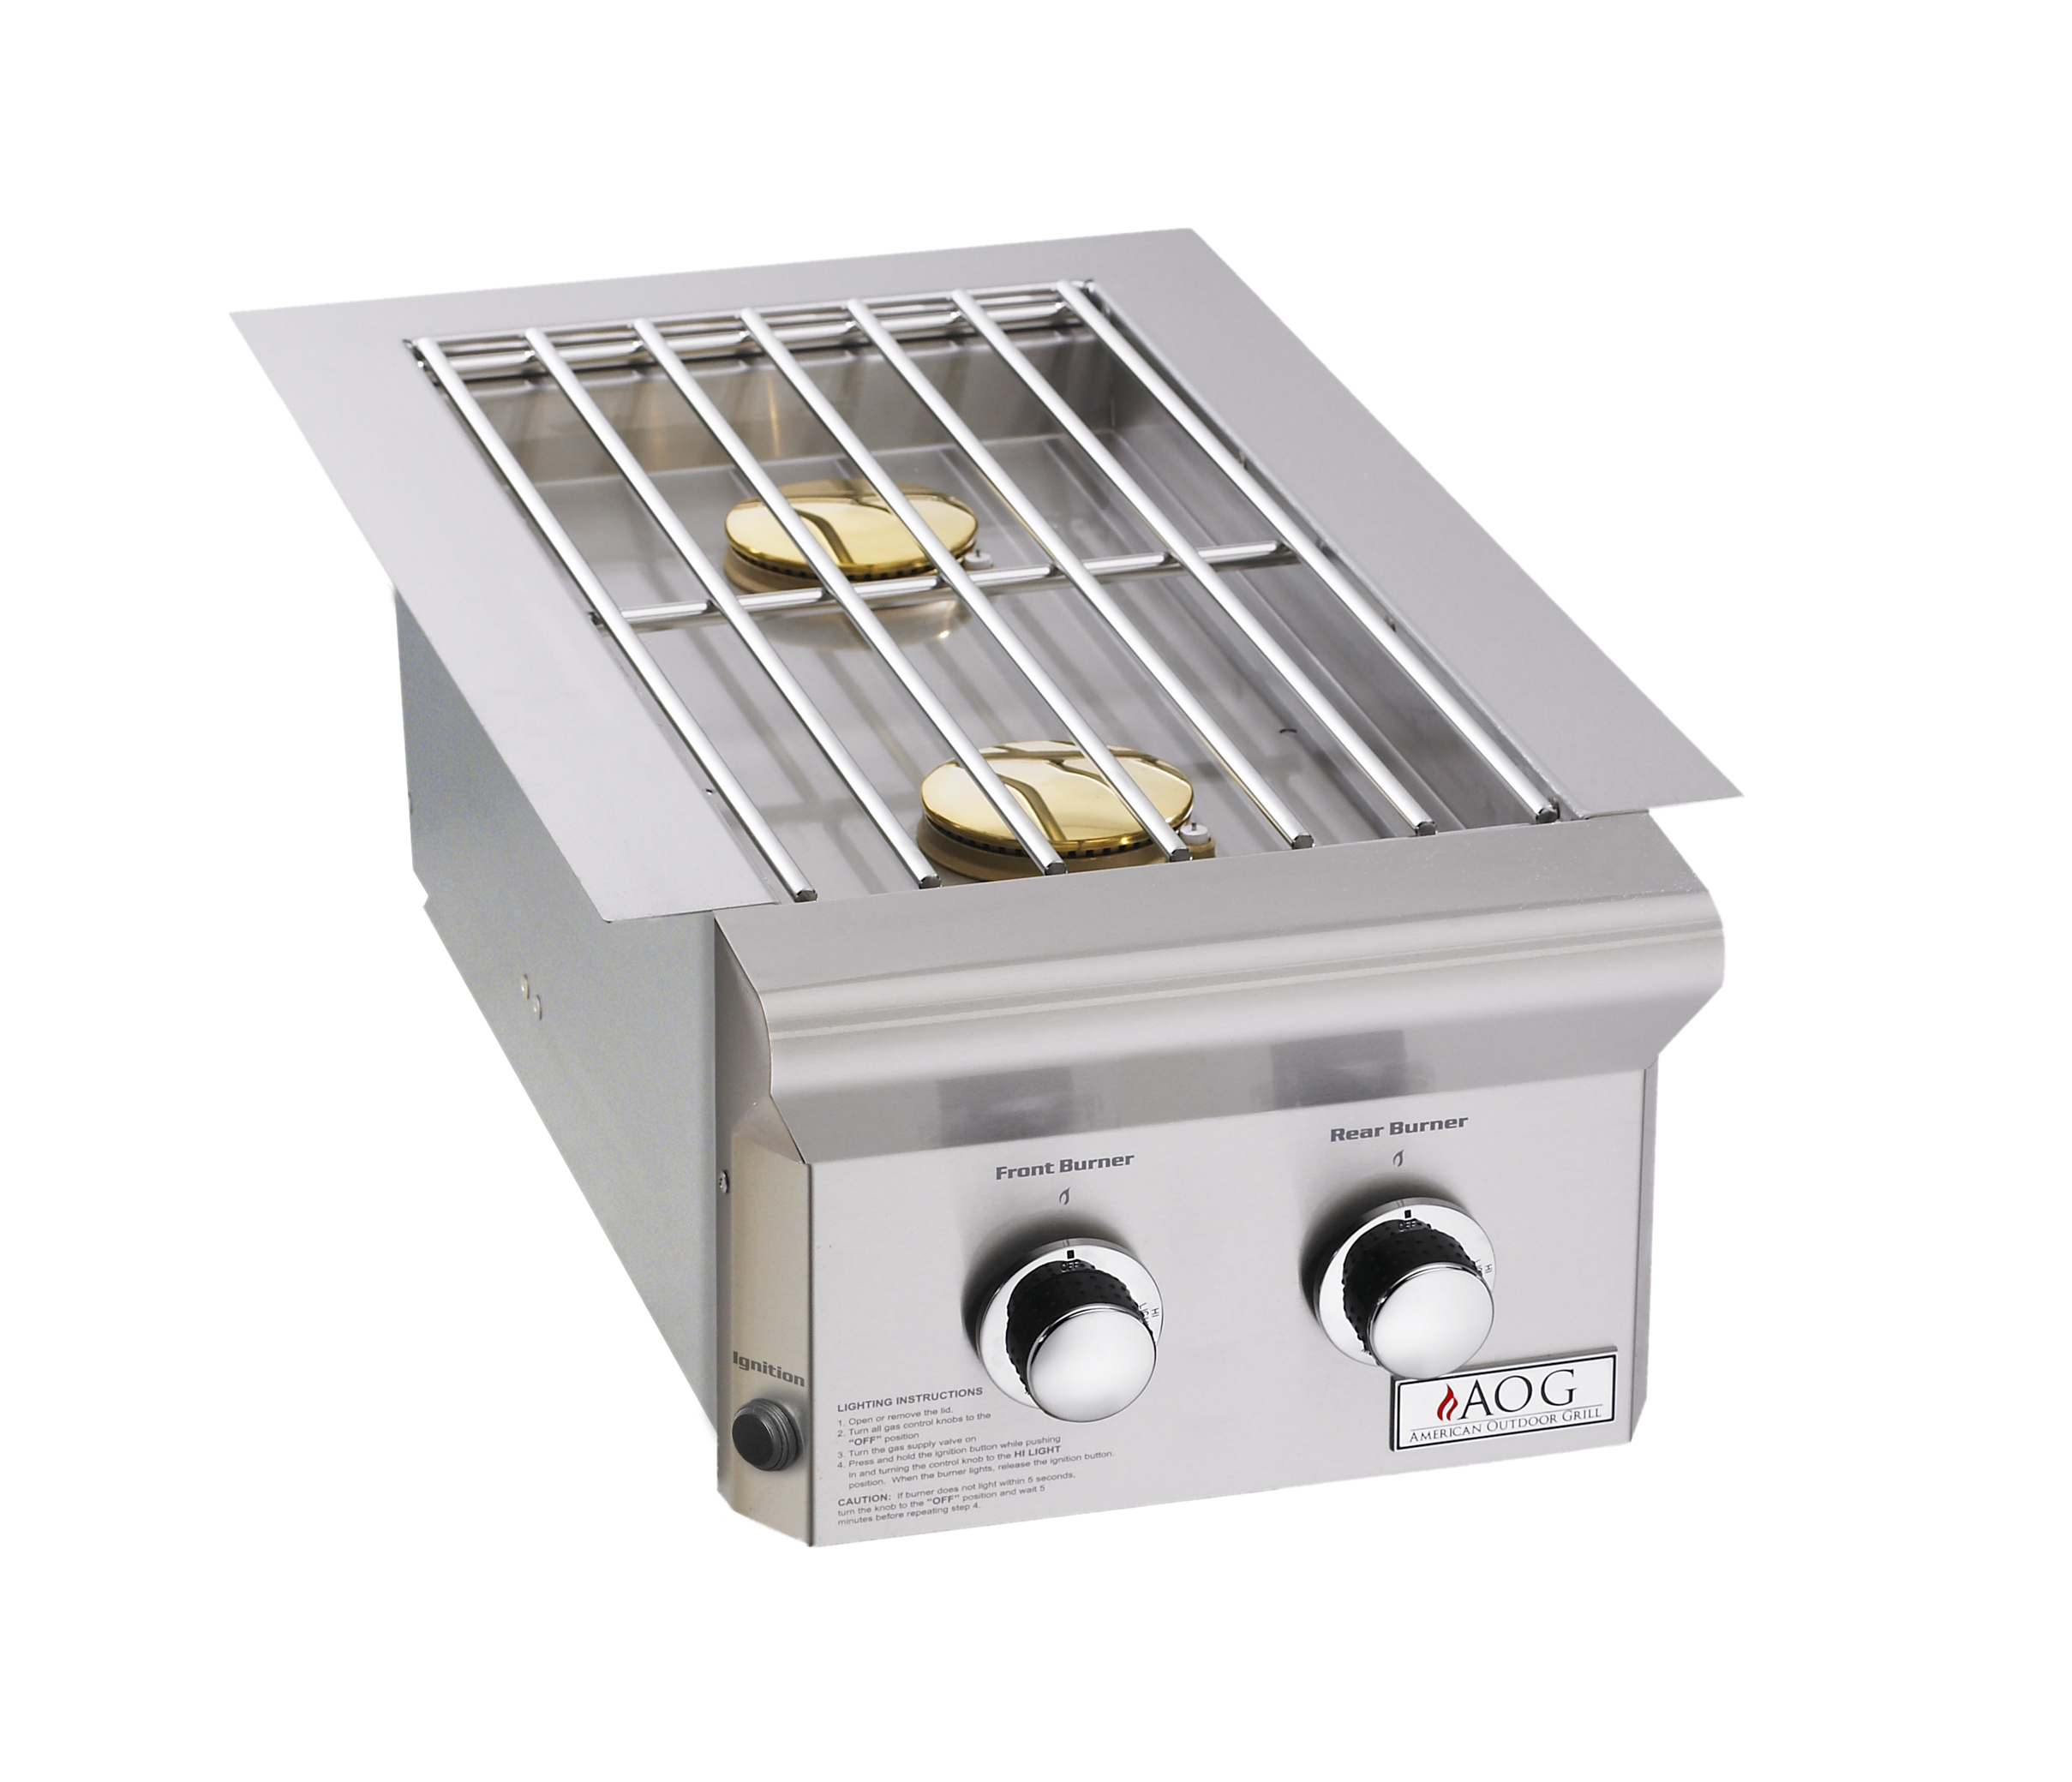 aog-3282l-built-in-double-side-burner-l-series.jpg